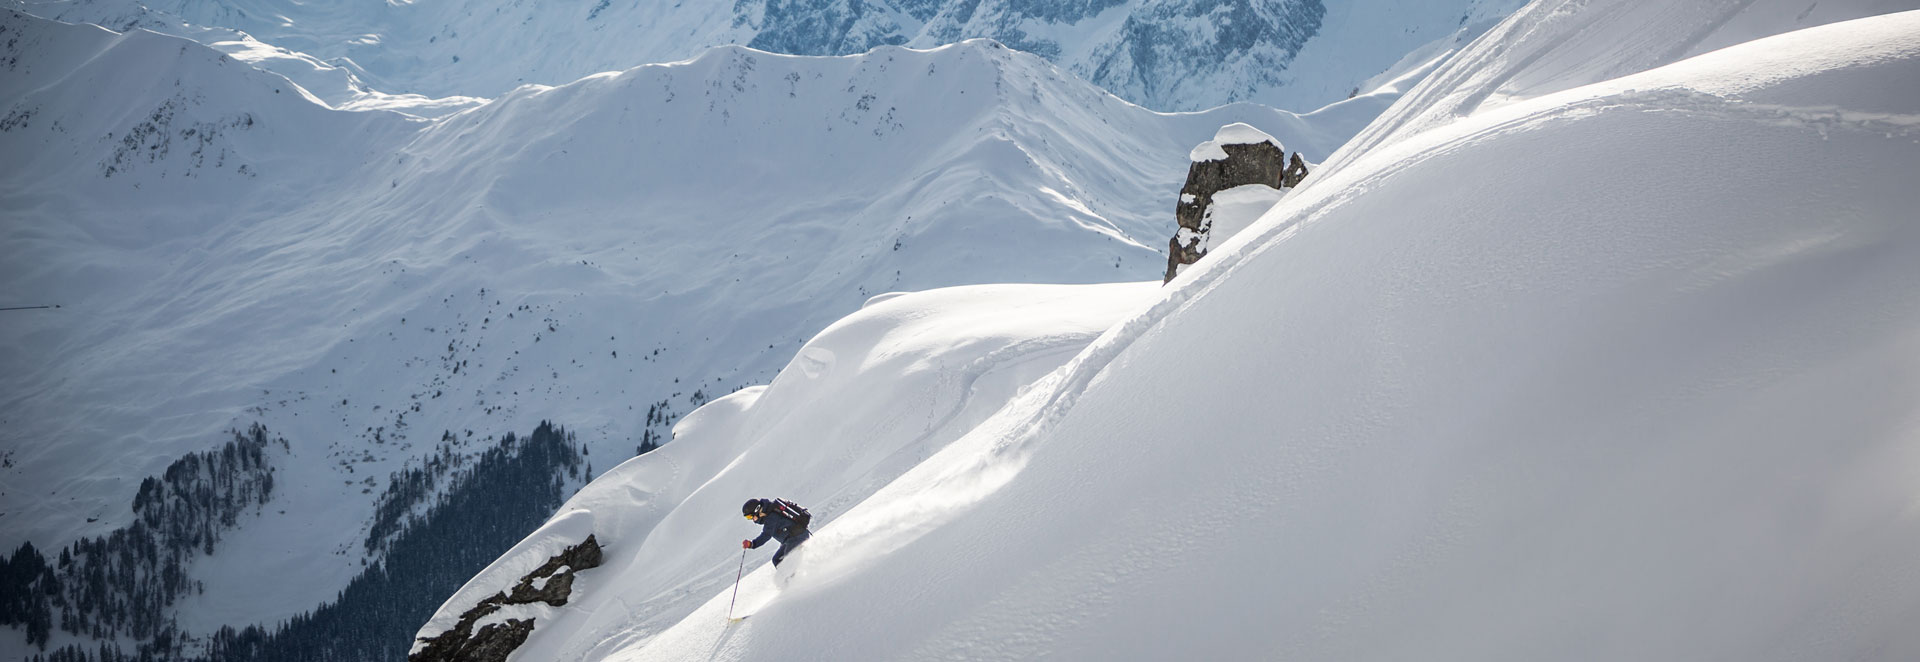 Verbier off piste backcountry Women's Camps